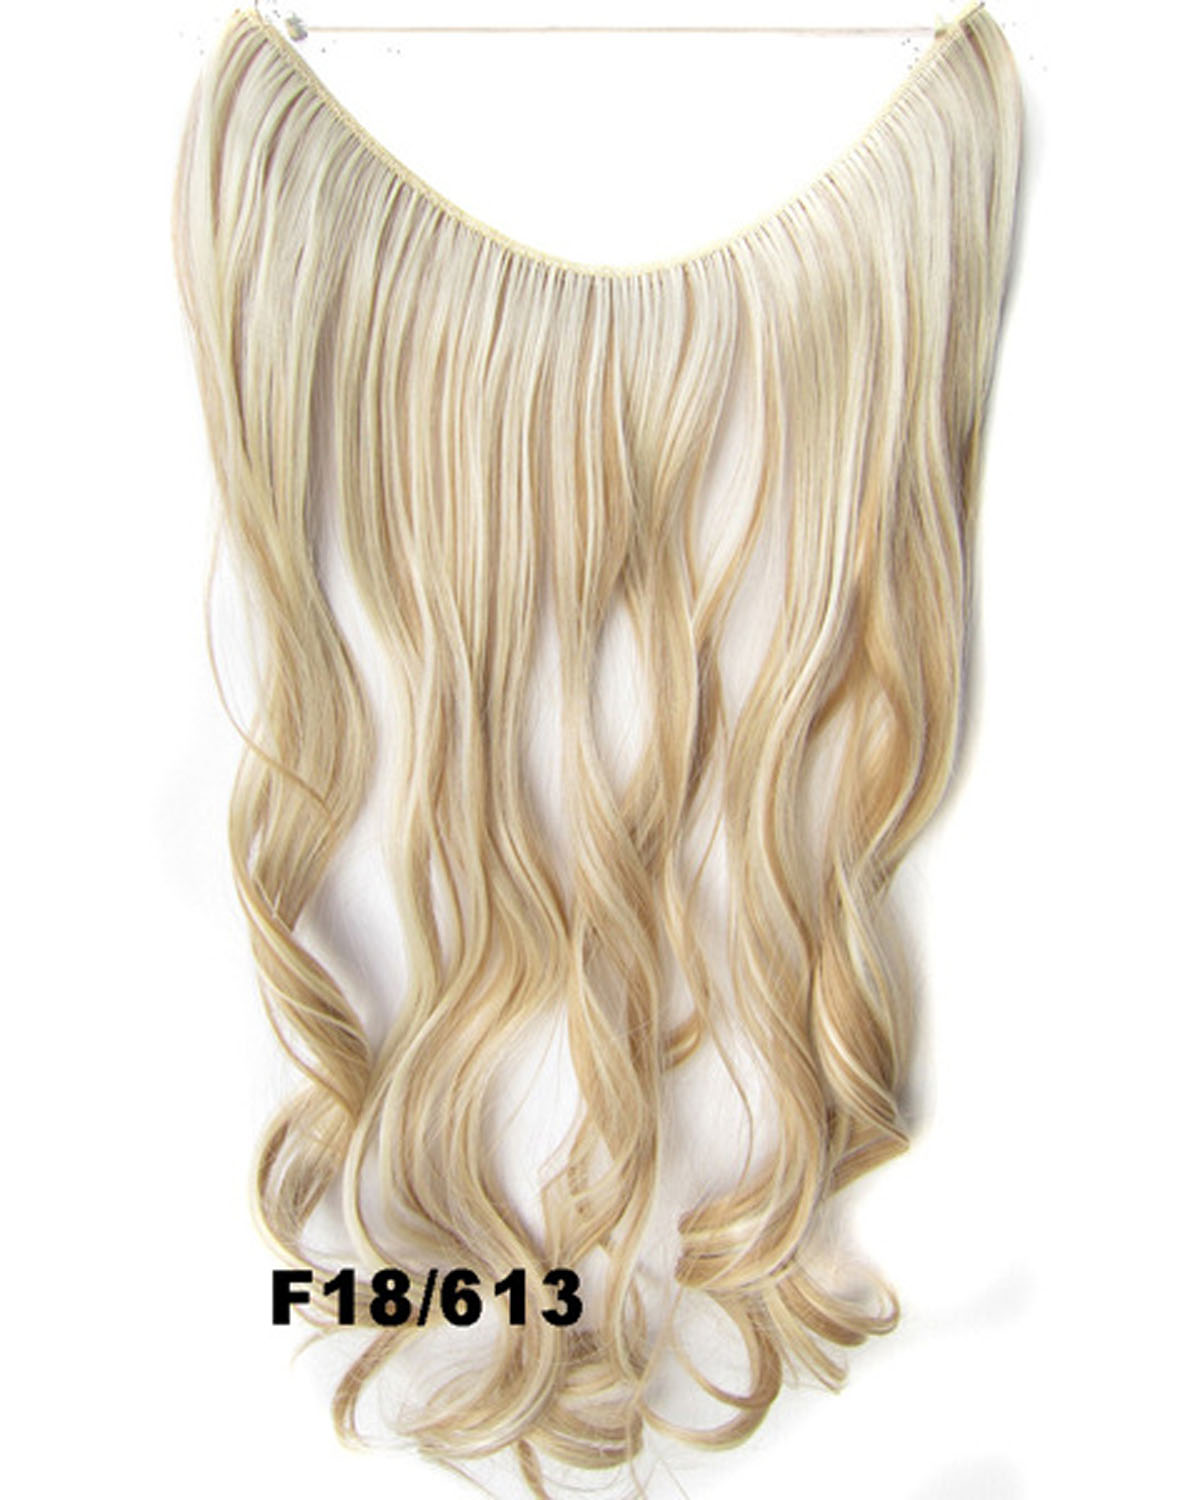 22 Inch Salable Curly and Long One Piece Miracle Wire Flip in Synthetic Hair ExtensionF18/613